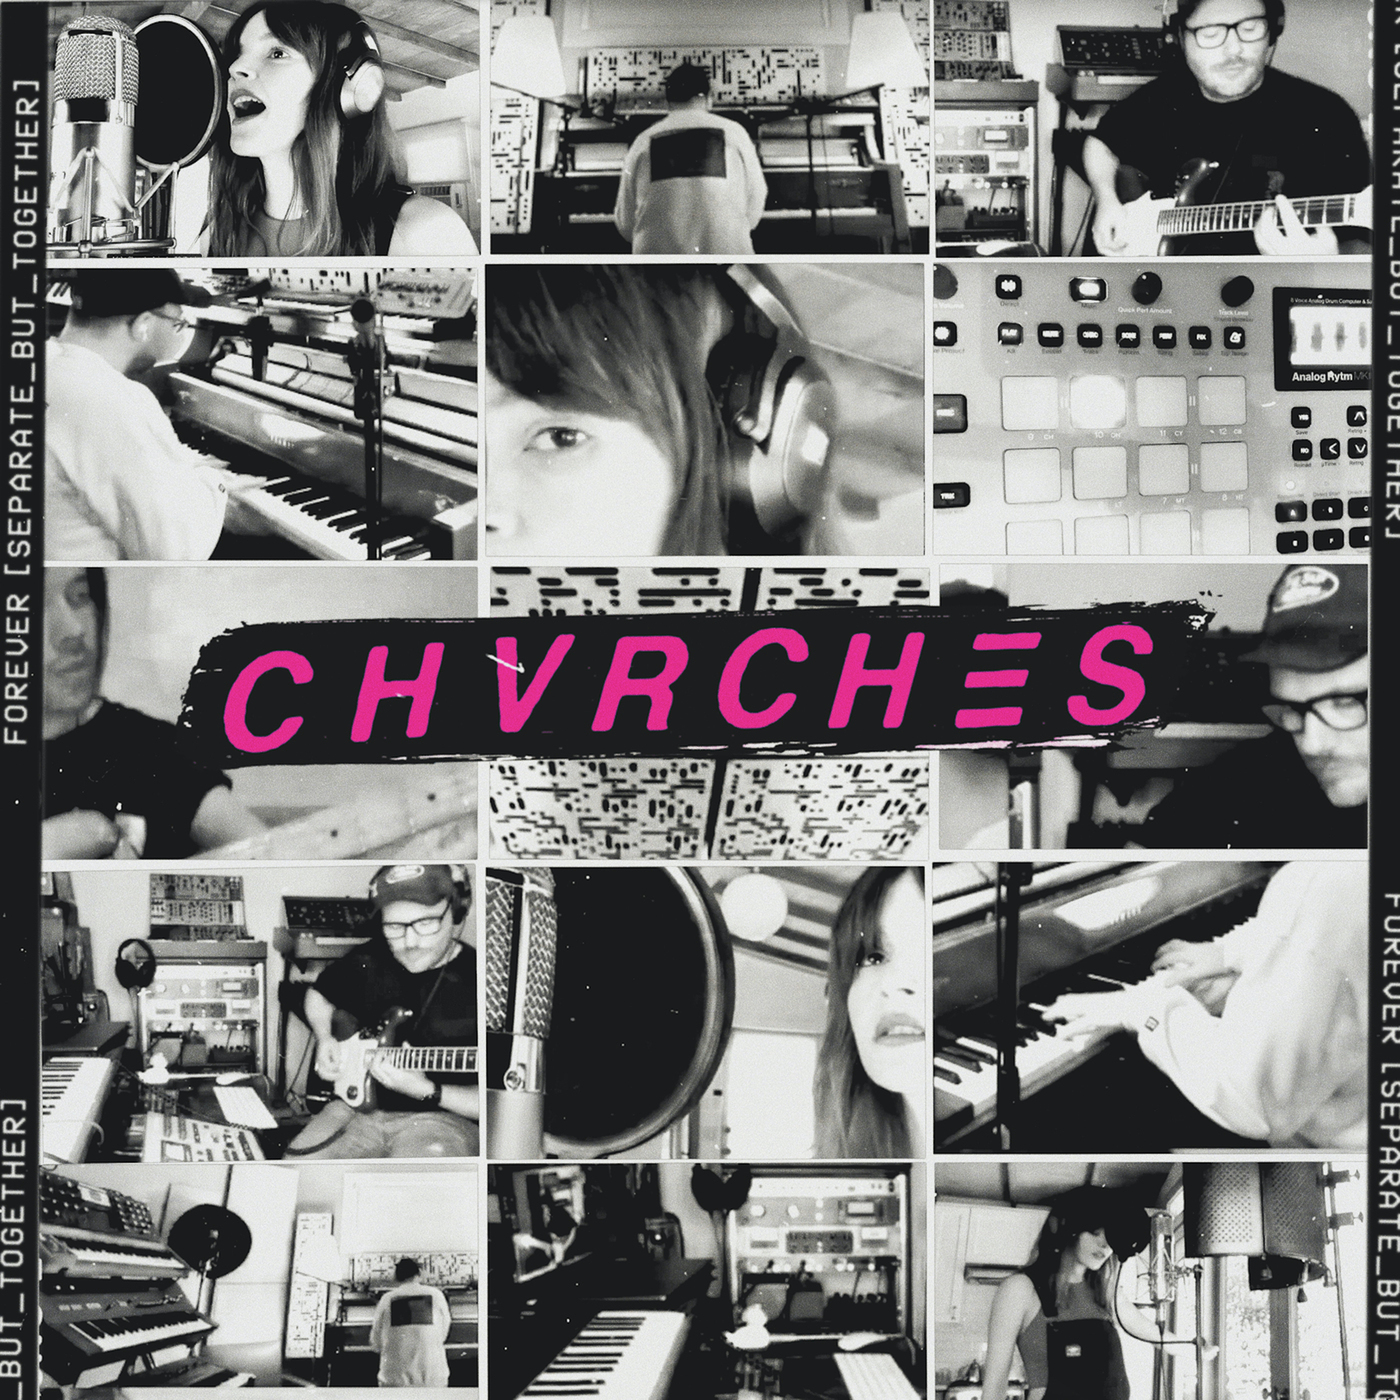 [10's] CHVRCHES - Forever (2018) CHVRCHES%20-%20Forever%20%28Separate%20But%20Together%29